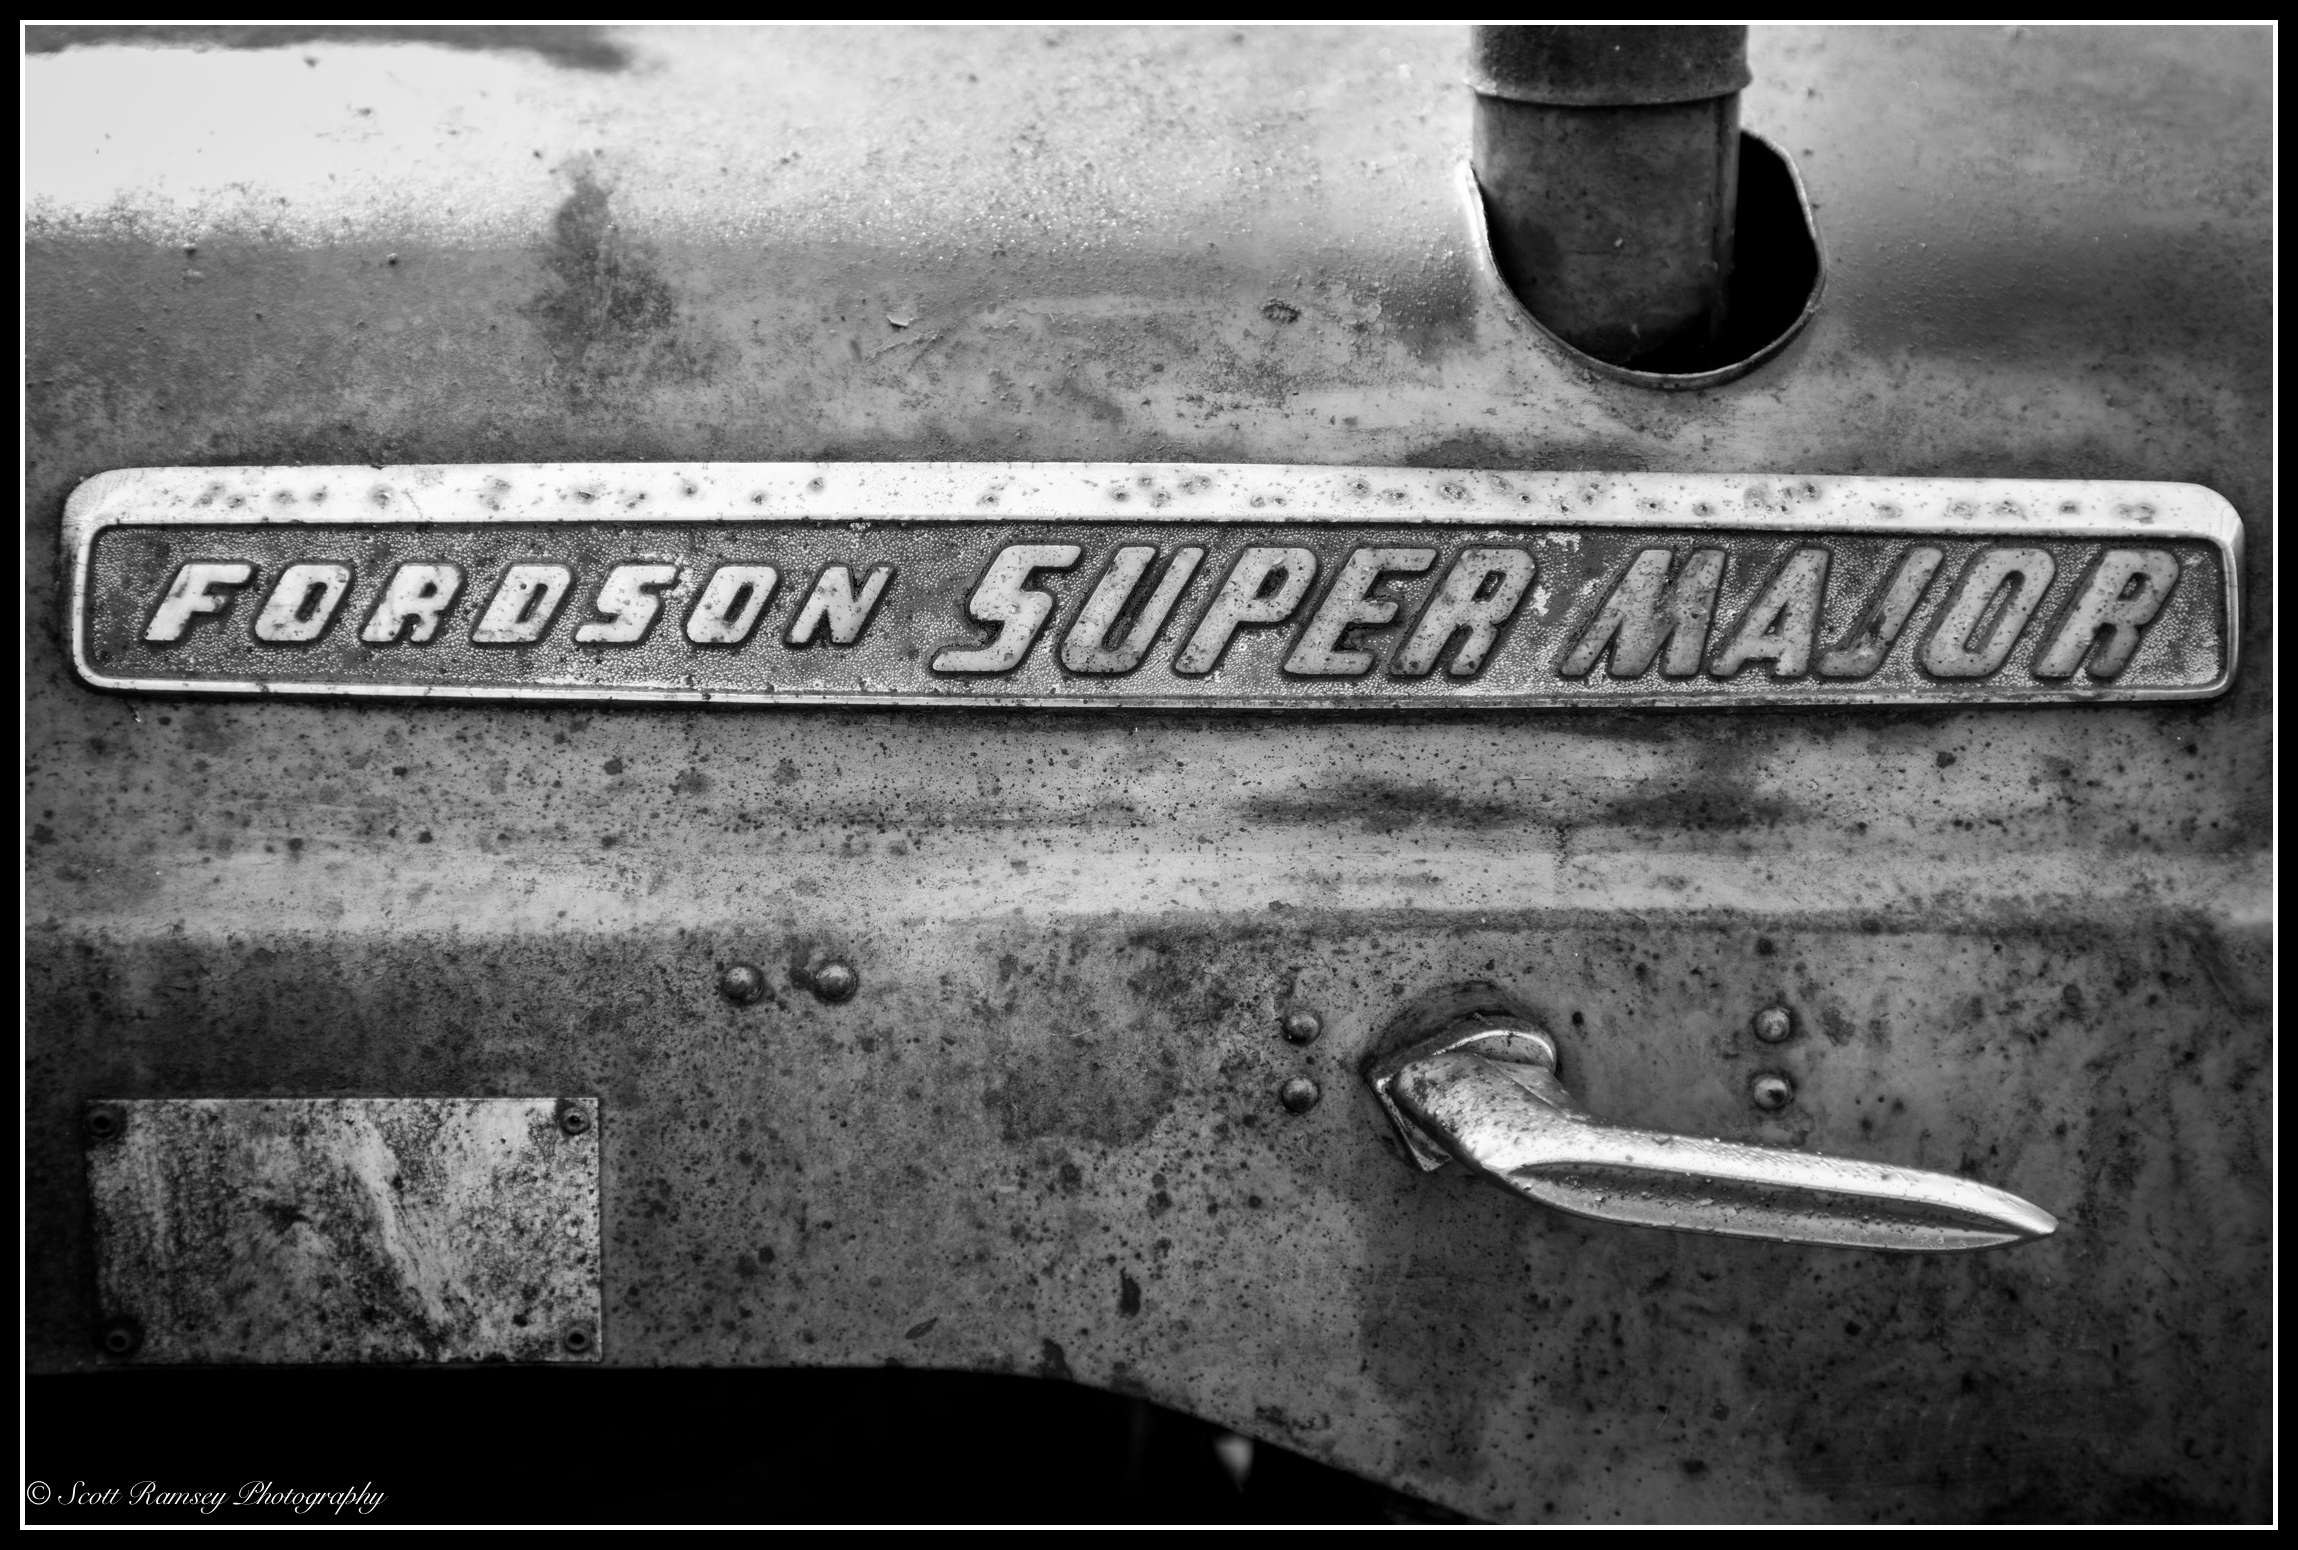 A name plate of a Fordson Super Major vintage tractor. These mass produced tractors where manufactured by Henry Ford & Son Inc from 1917 to 1920.